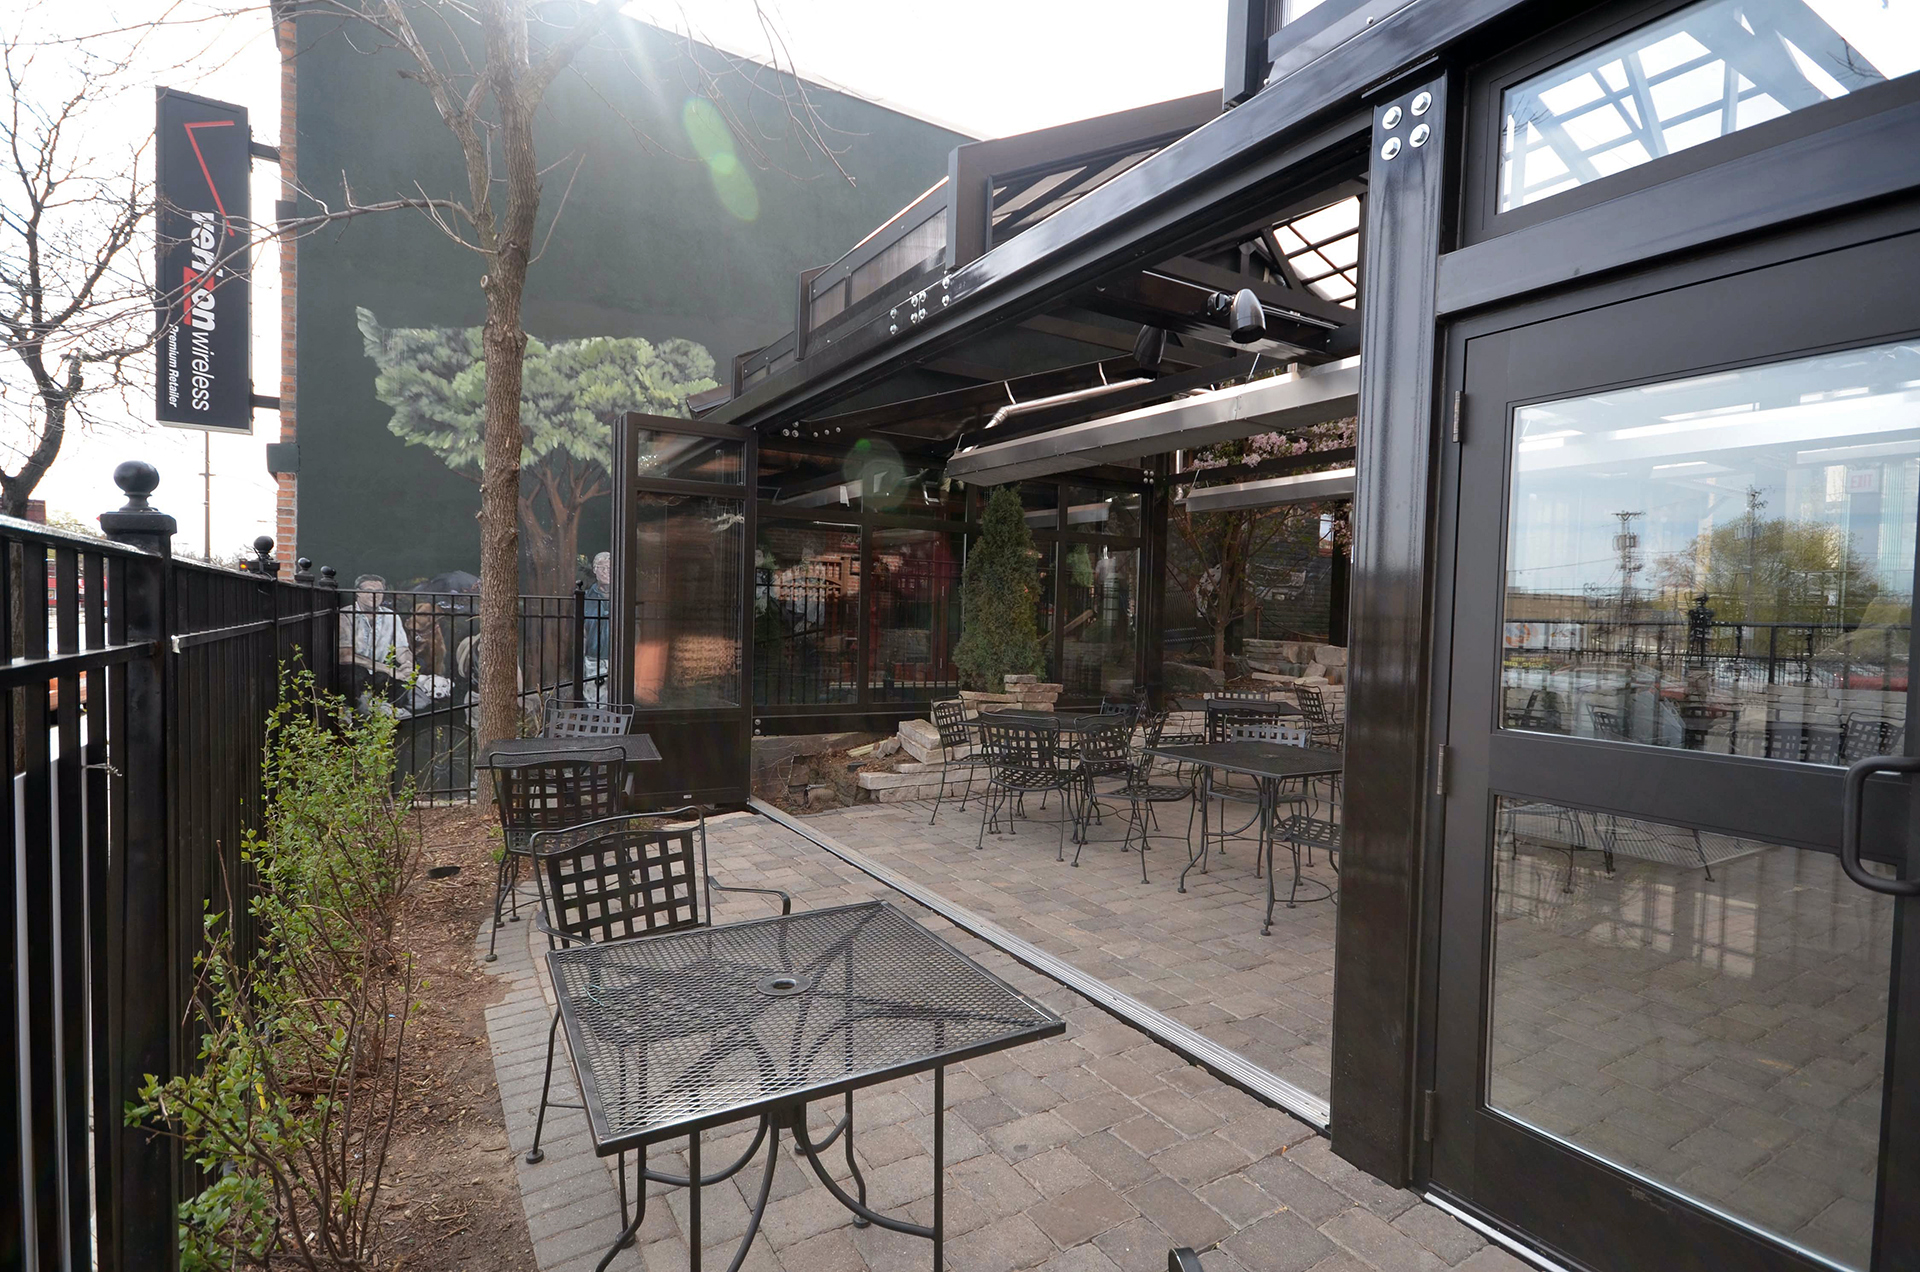 Opening folding walls on restaurant patio